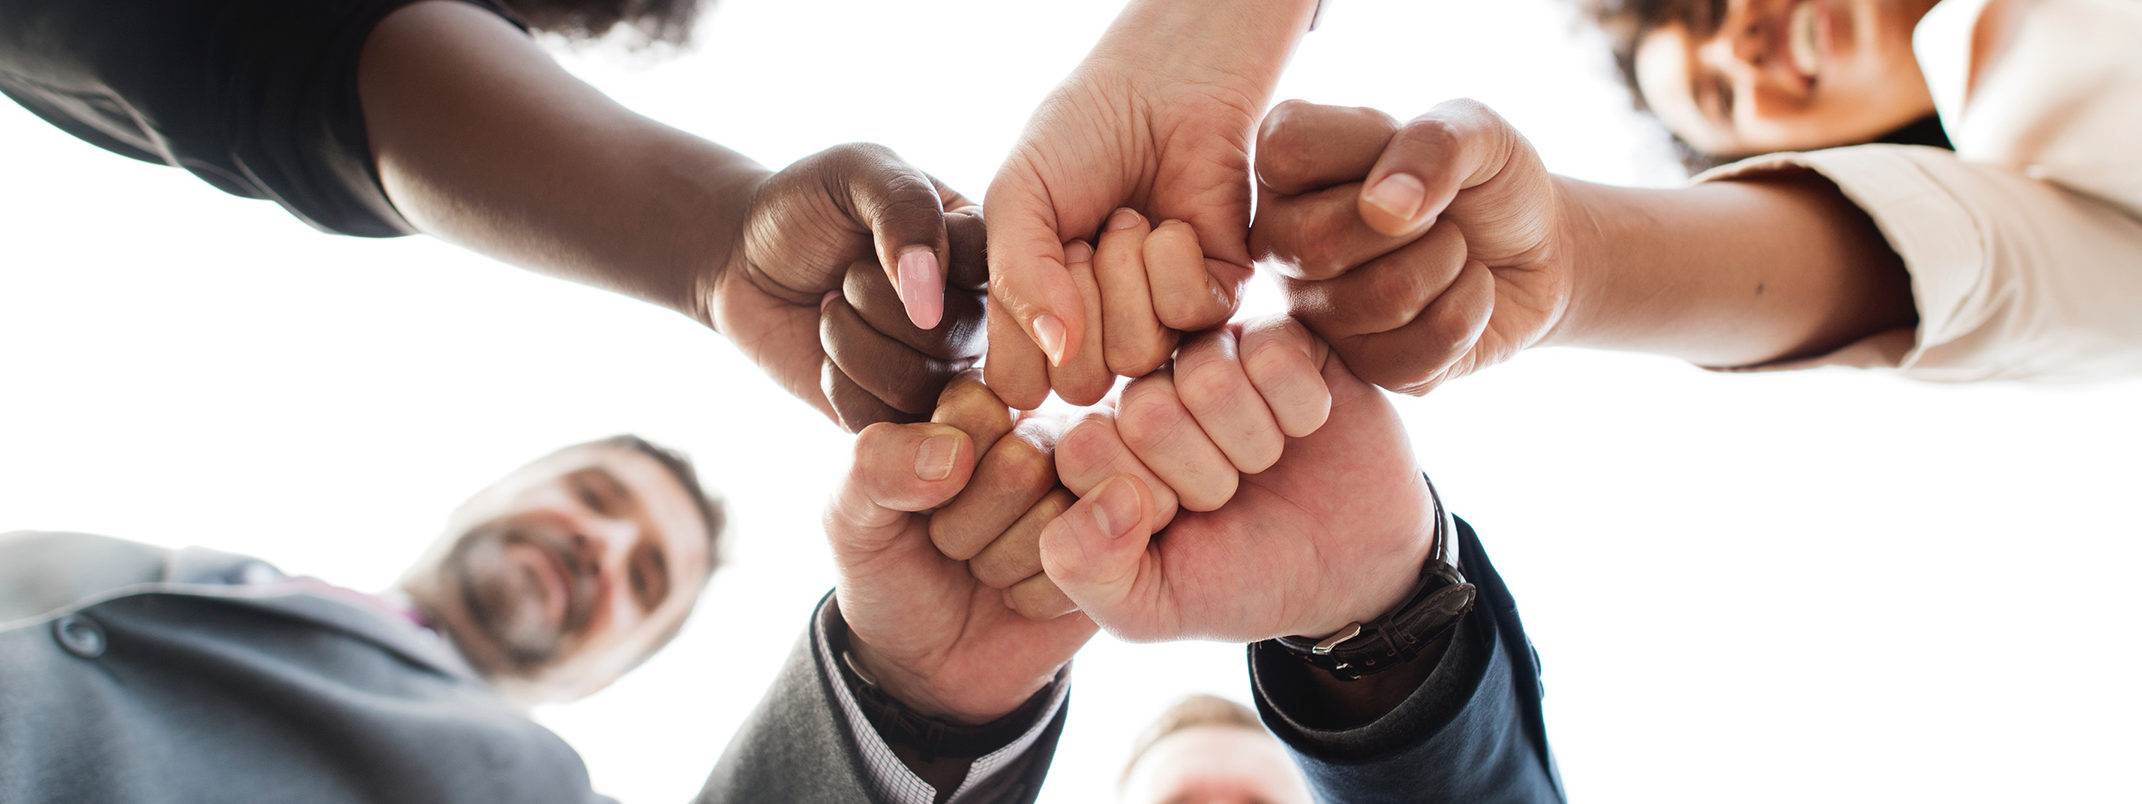 coworkers pounding hands in celebration to depict an empowering, unified, and supportive environment - view from below hands